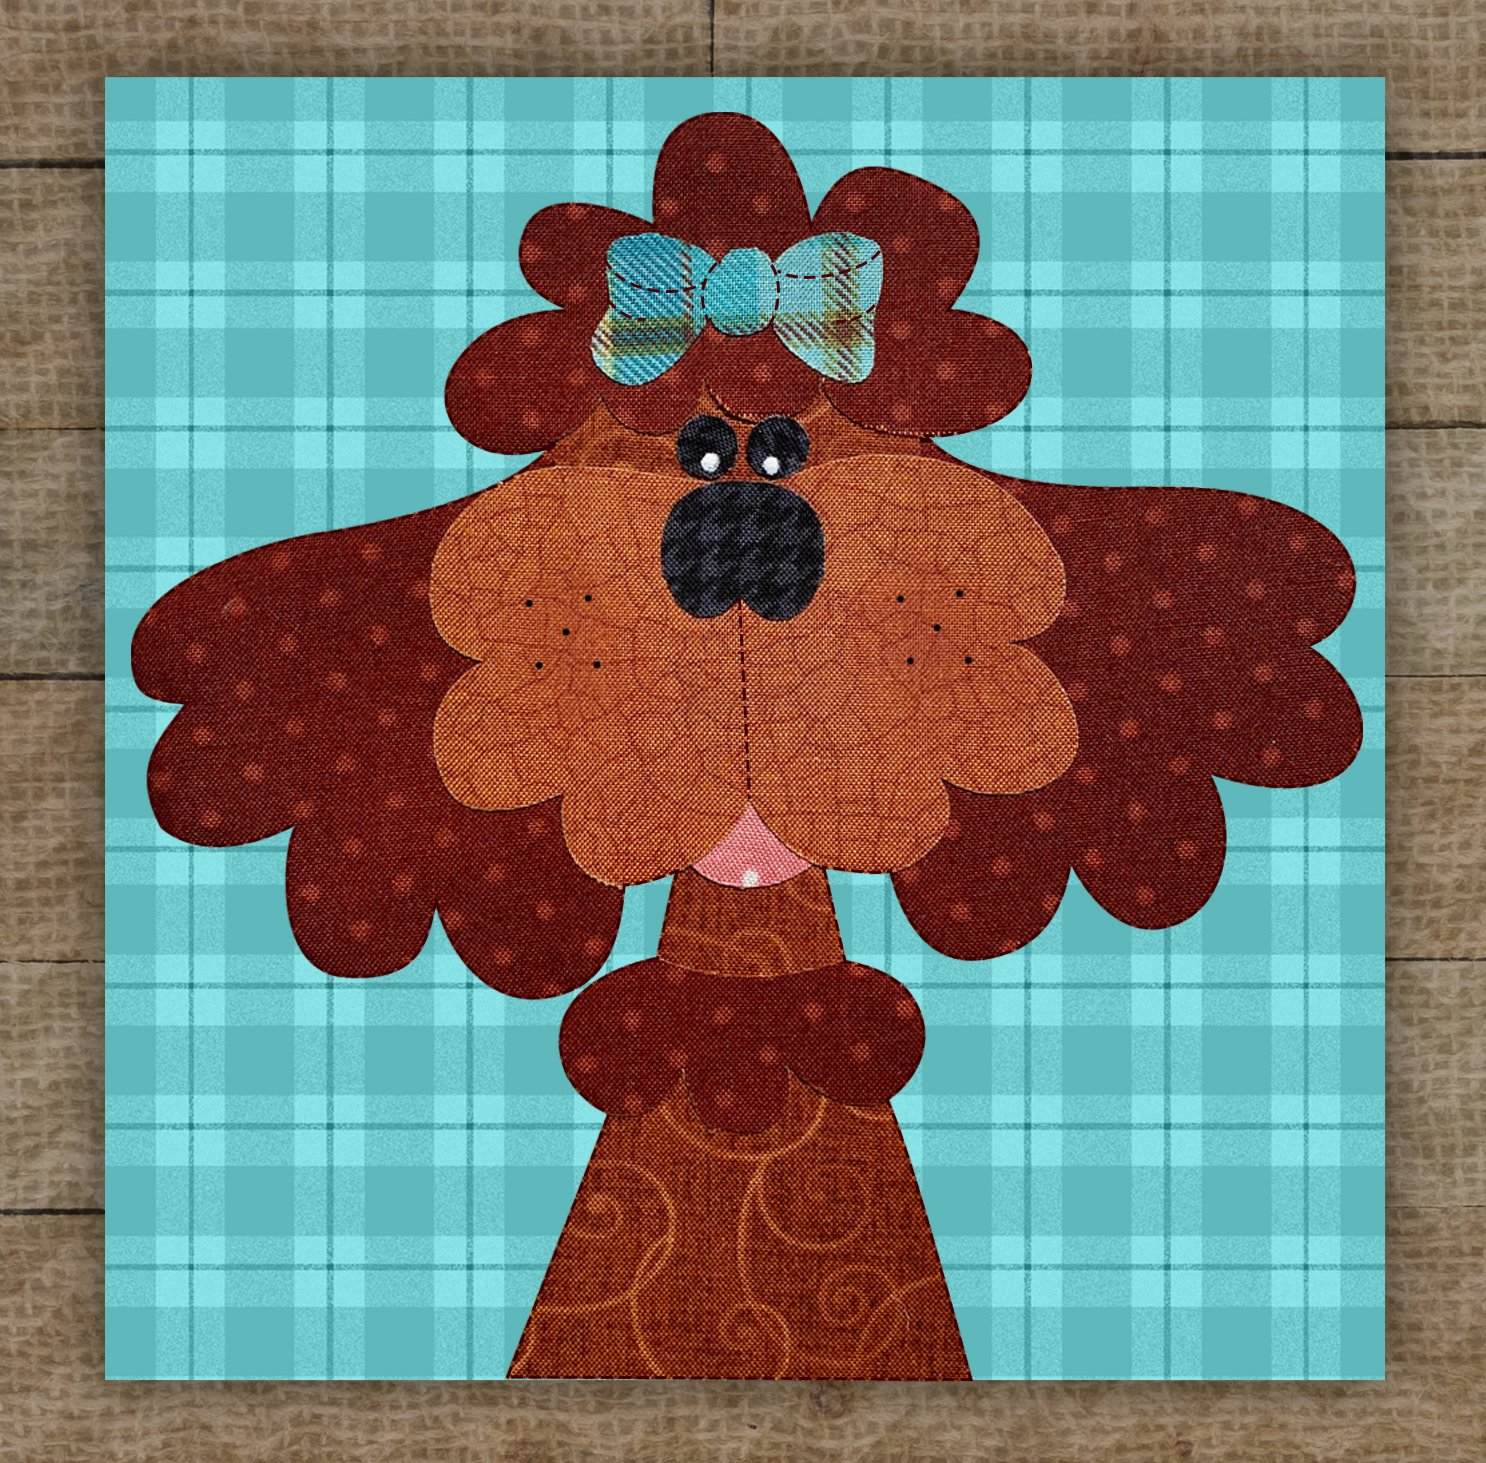 Poodle (Apricot) Precut Fused Applique Kit